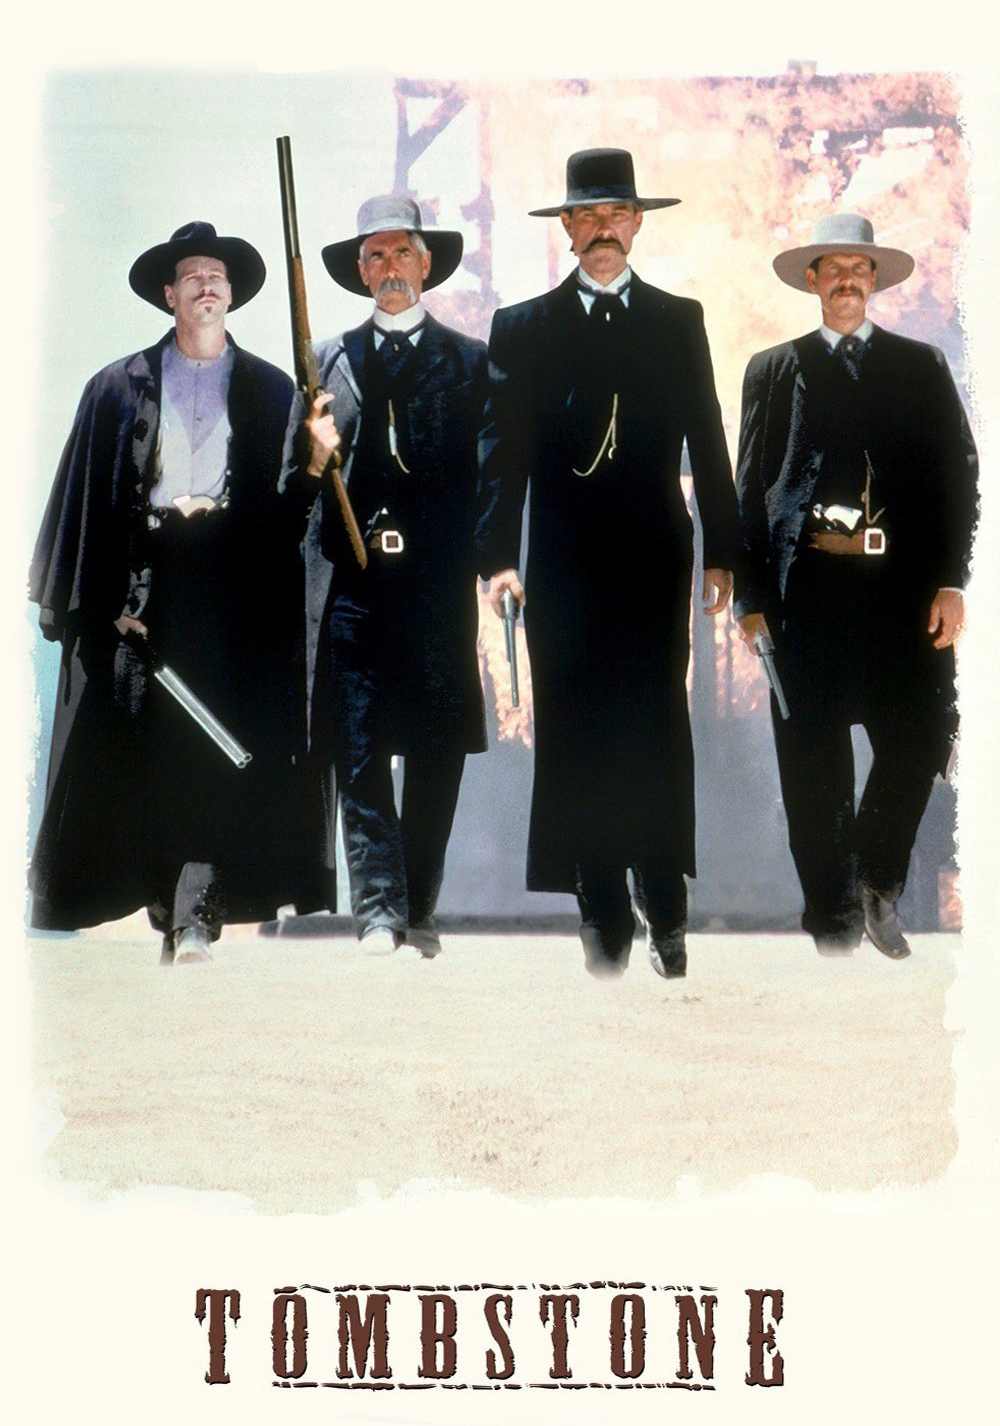 Tombstone movie poster hd wallpaper